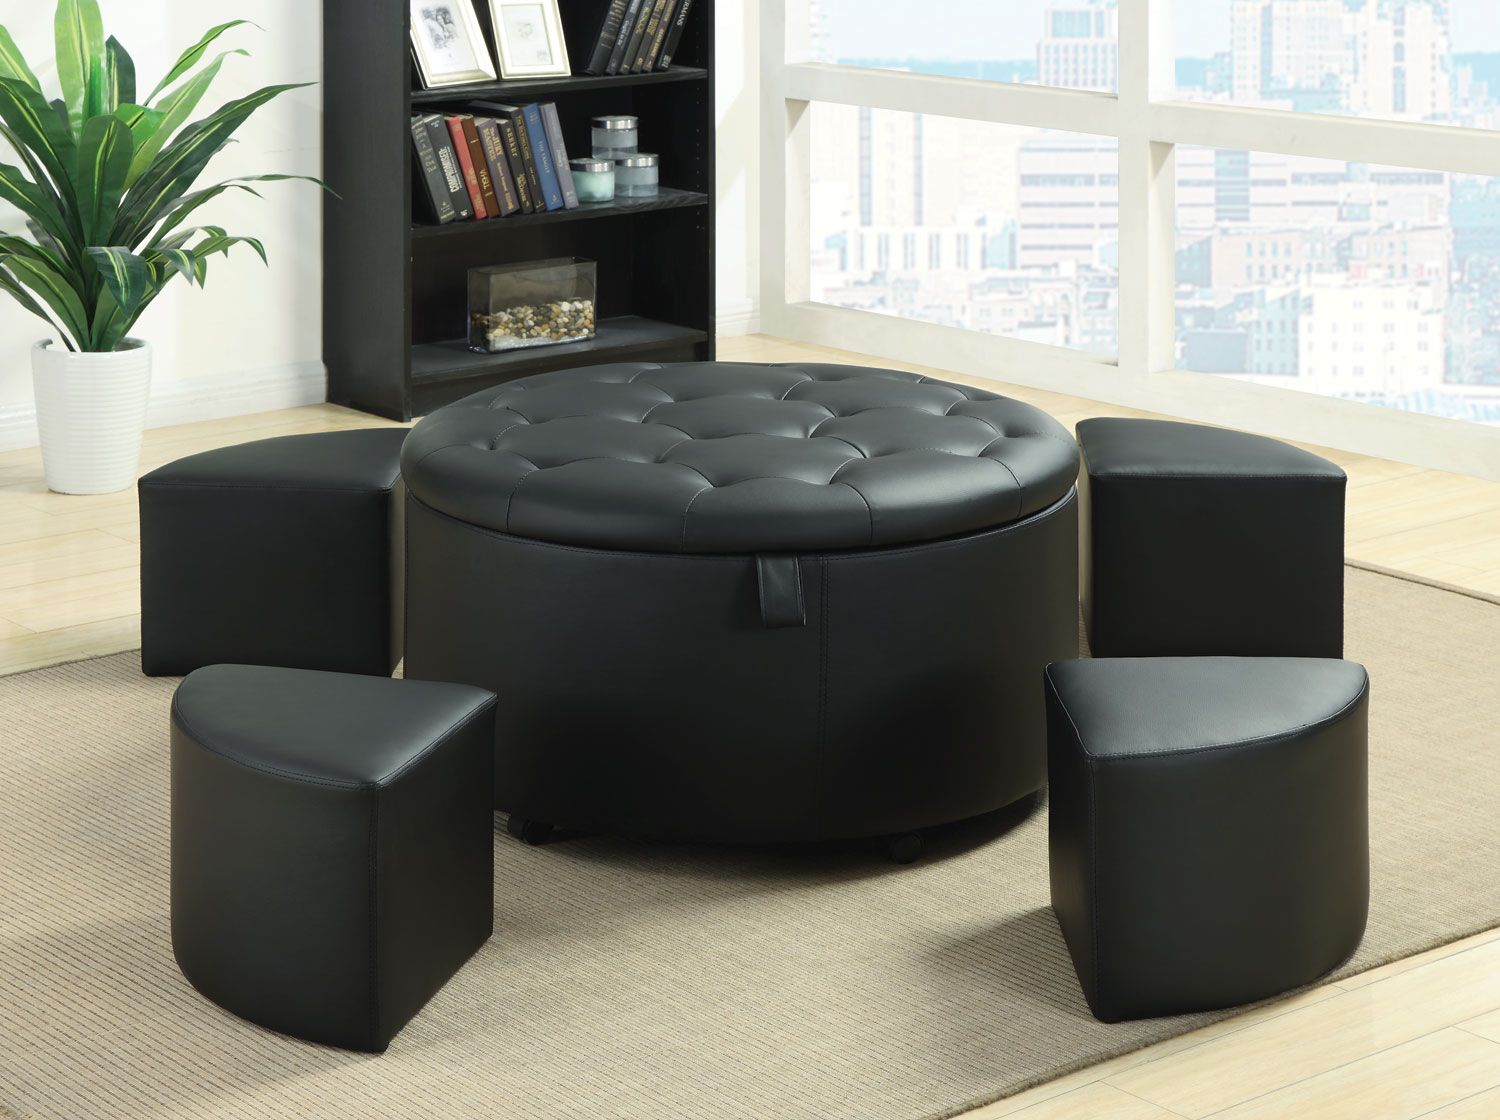 Outstanding 5 Piece Black Faux Leather Ottoman Set Bralicious Painted Fabric Chair Ideas Braliciousco